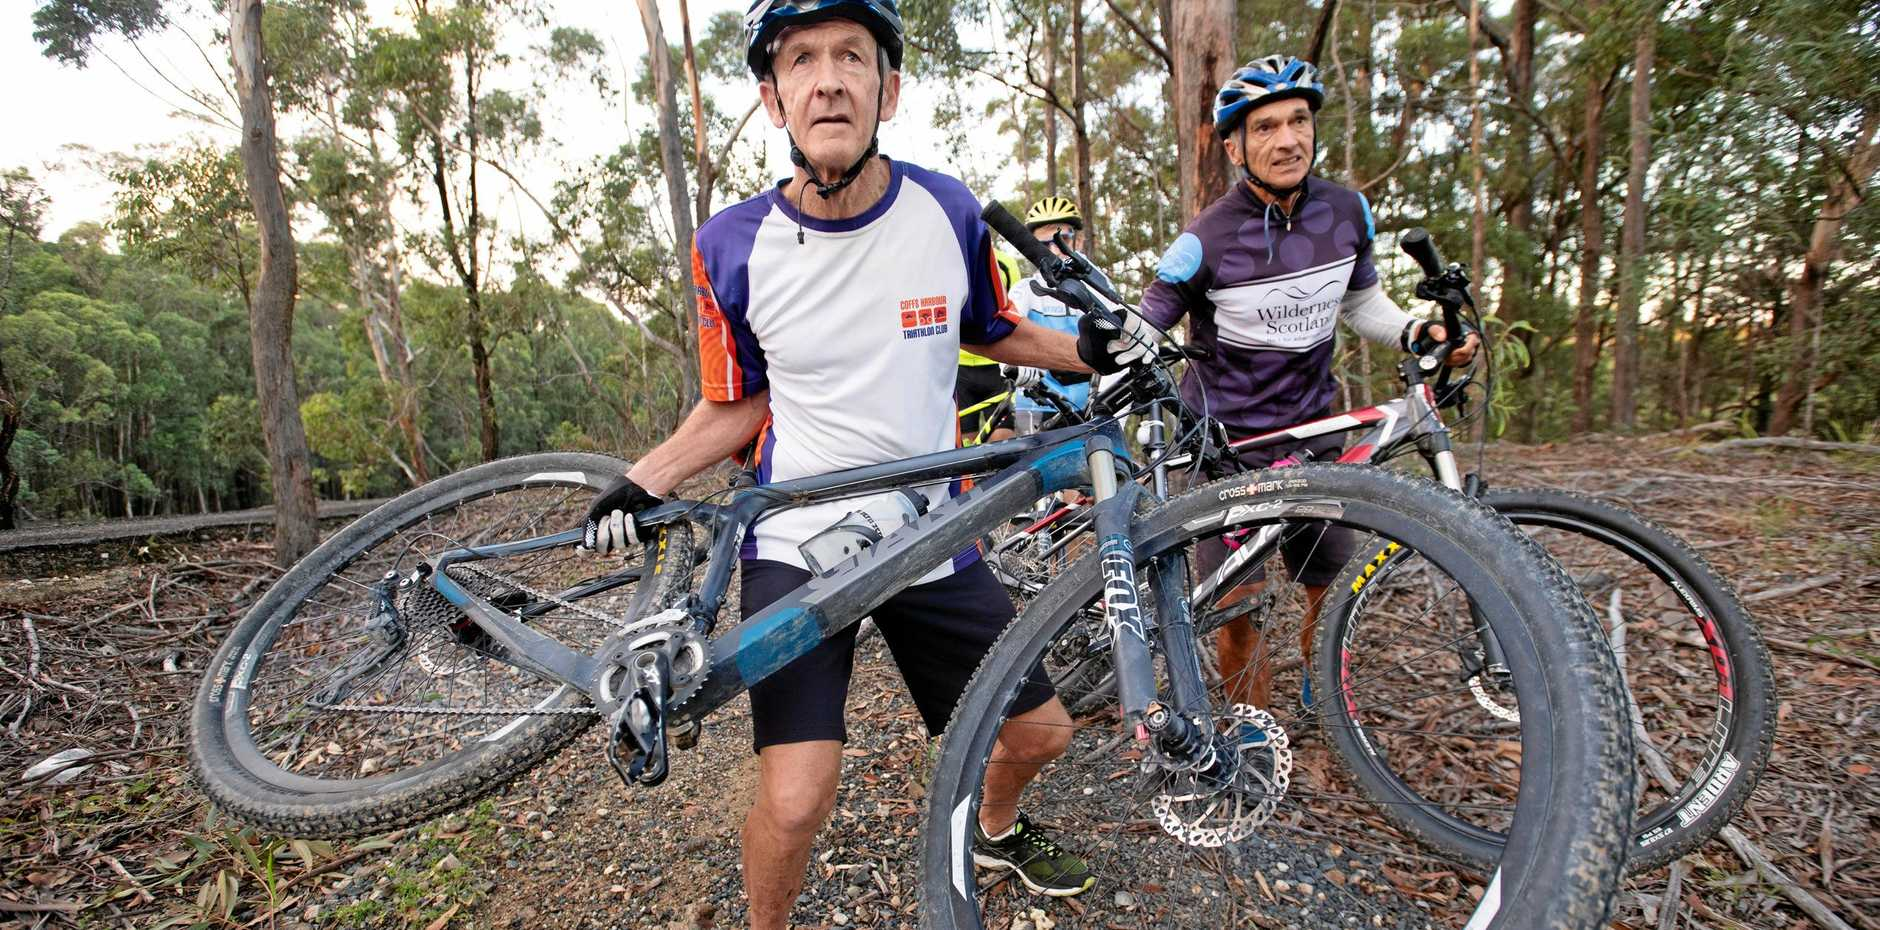 SCARY: Mountain bike riders set upon by dogs, Rod Wilbers front and behind Dave Moffatt show how they held up their bikes for protection.